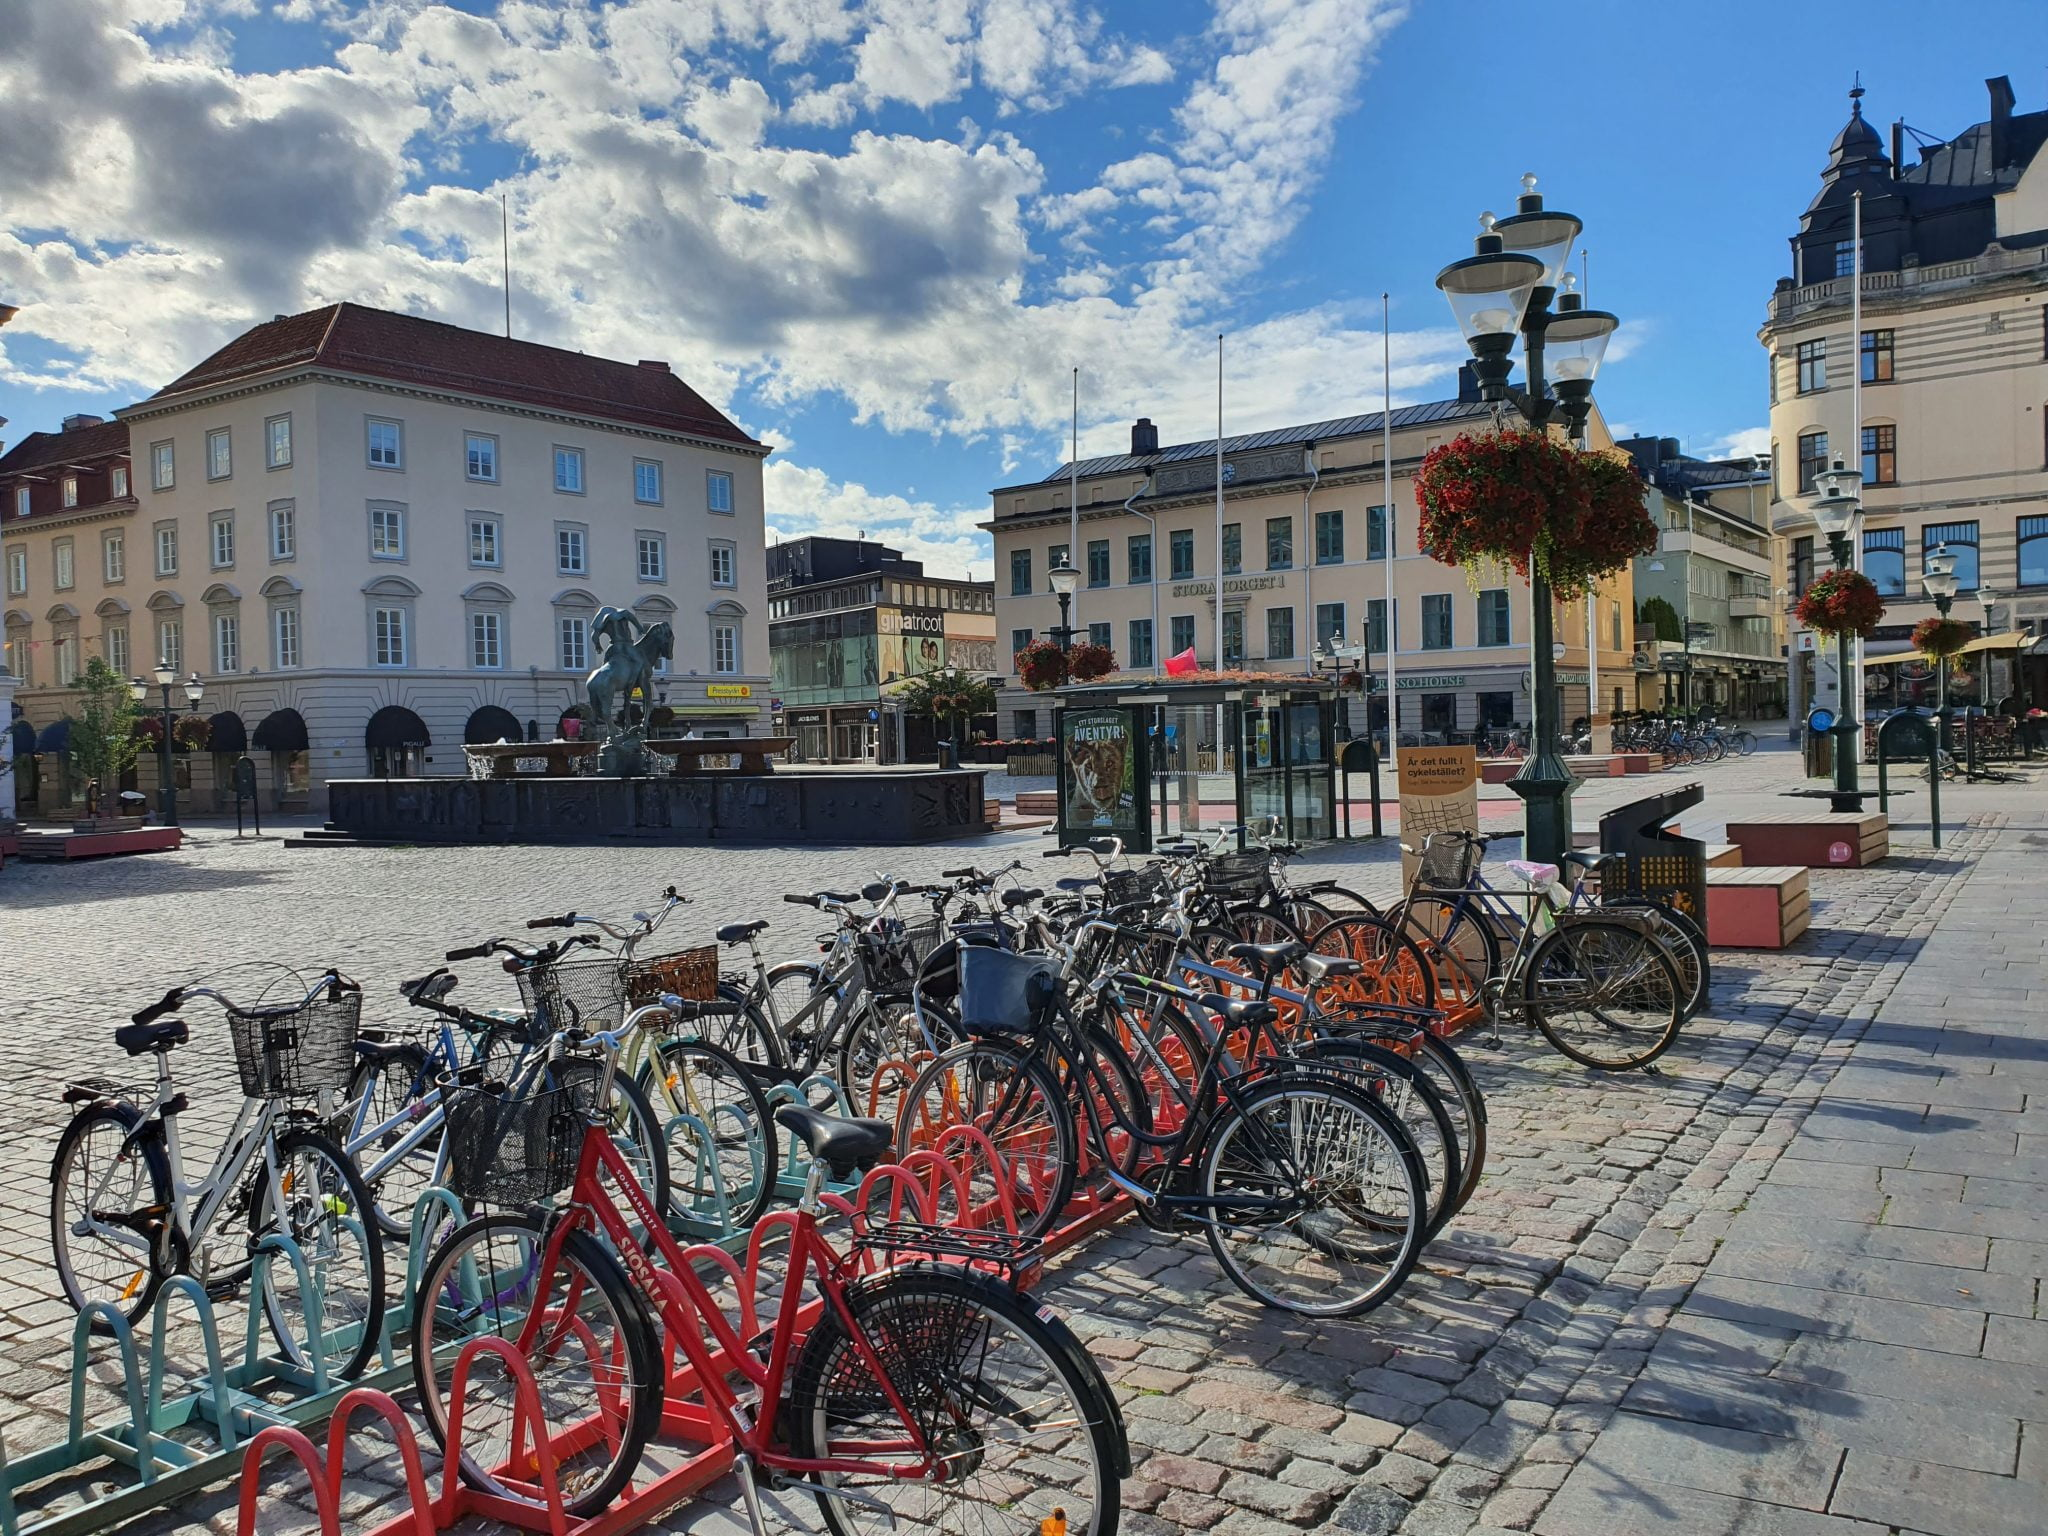 Town Center, Linköping